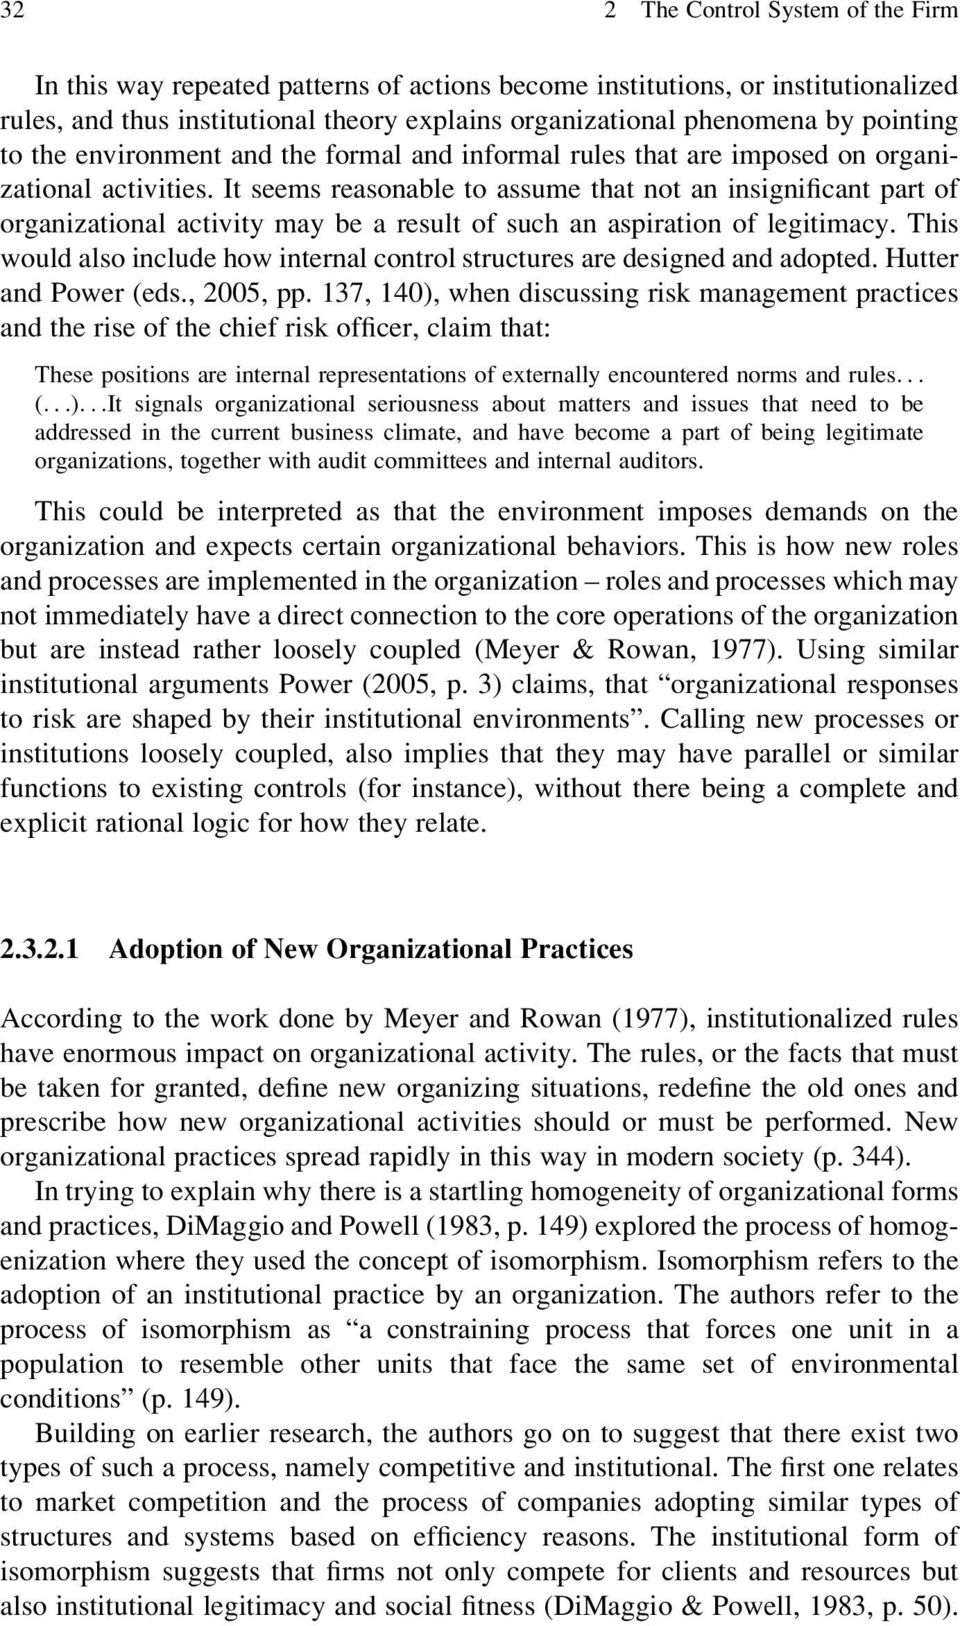 It seems reasonable to assume that not an insignificant part of organizational activity may be a result of such an aspiration of legitimacy.